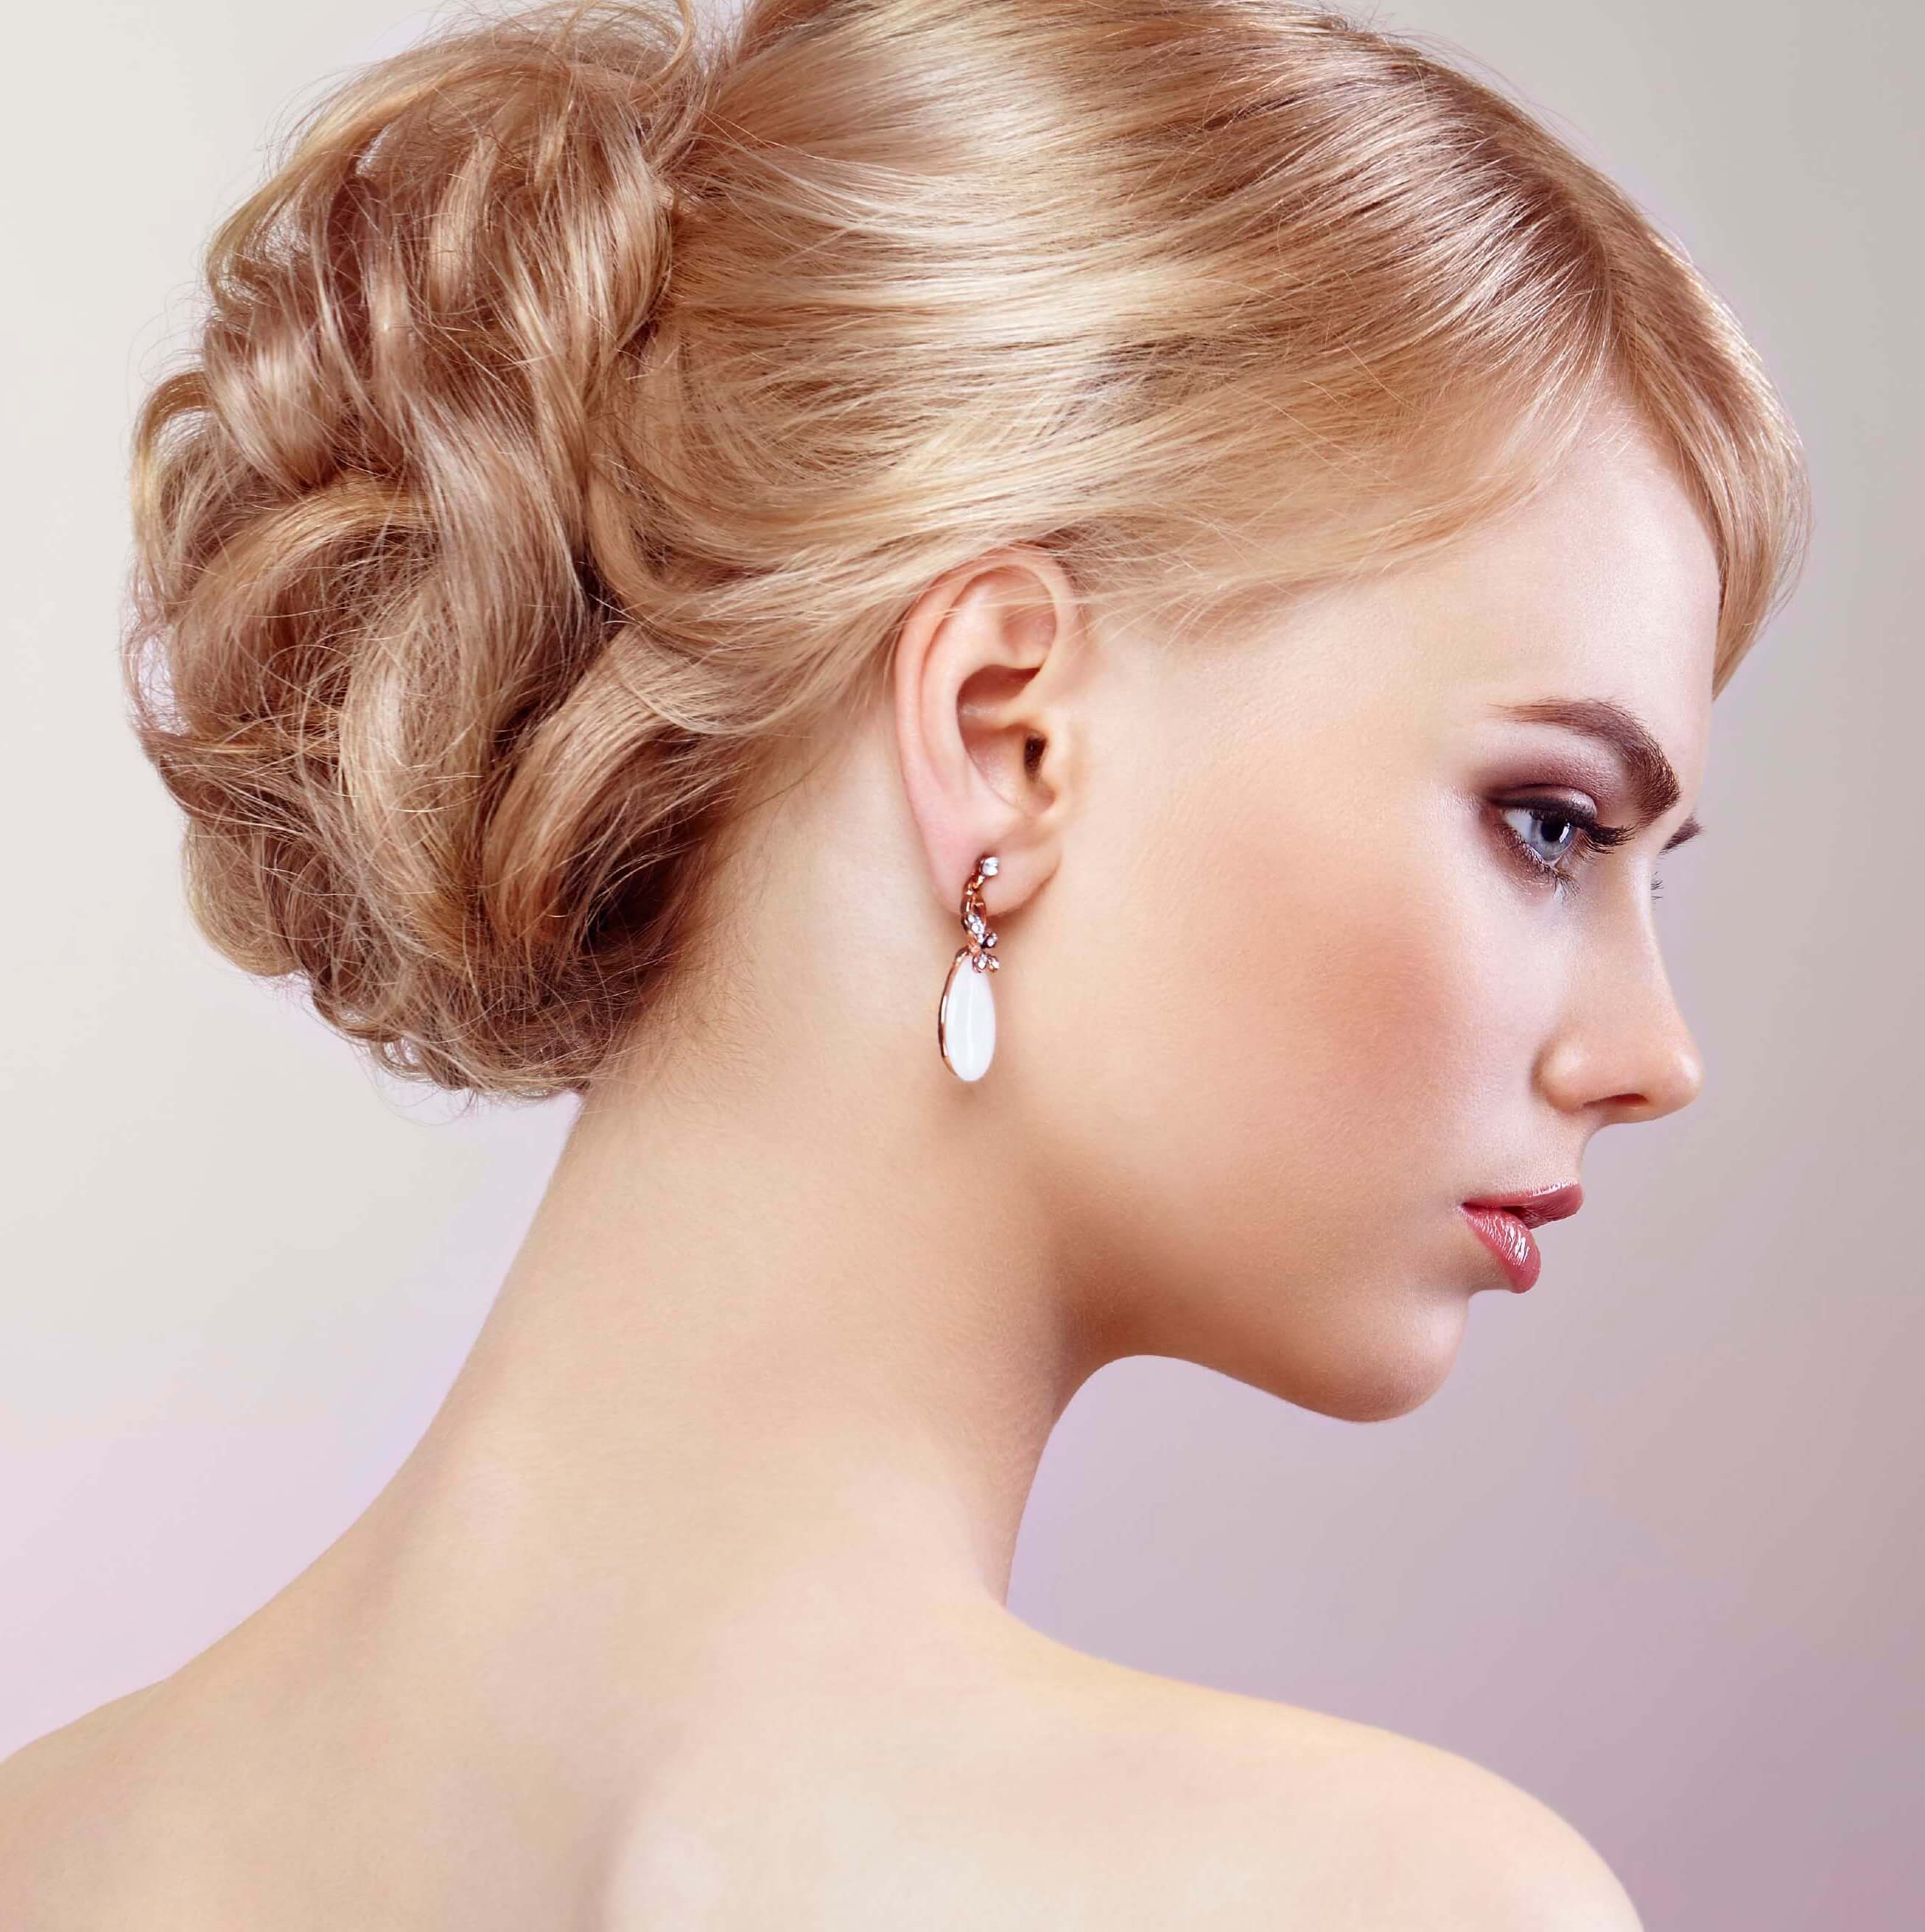 8 uber chic chignon hairstyles for your wedding day